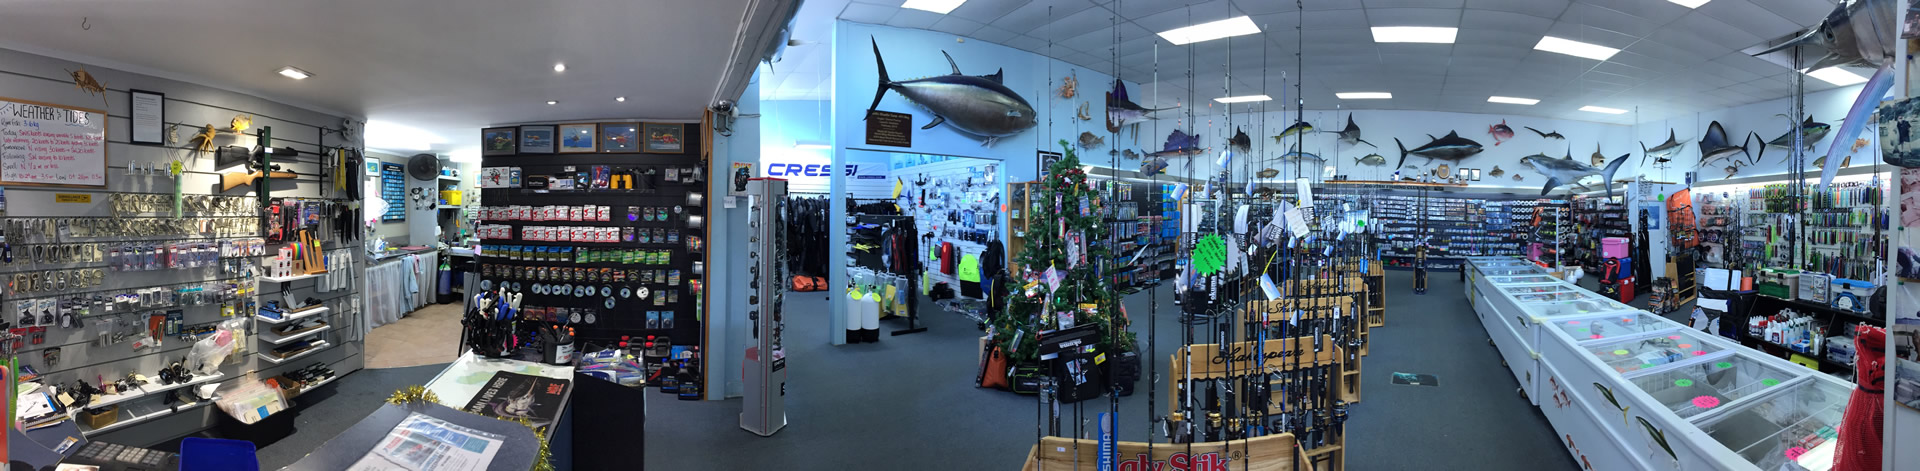 The Big Fish Bait and Tackle Company Limited